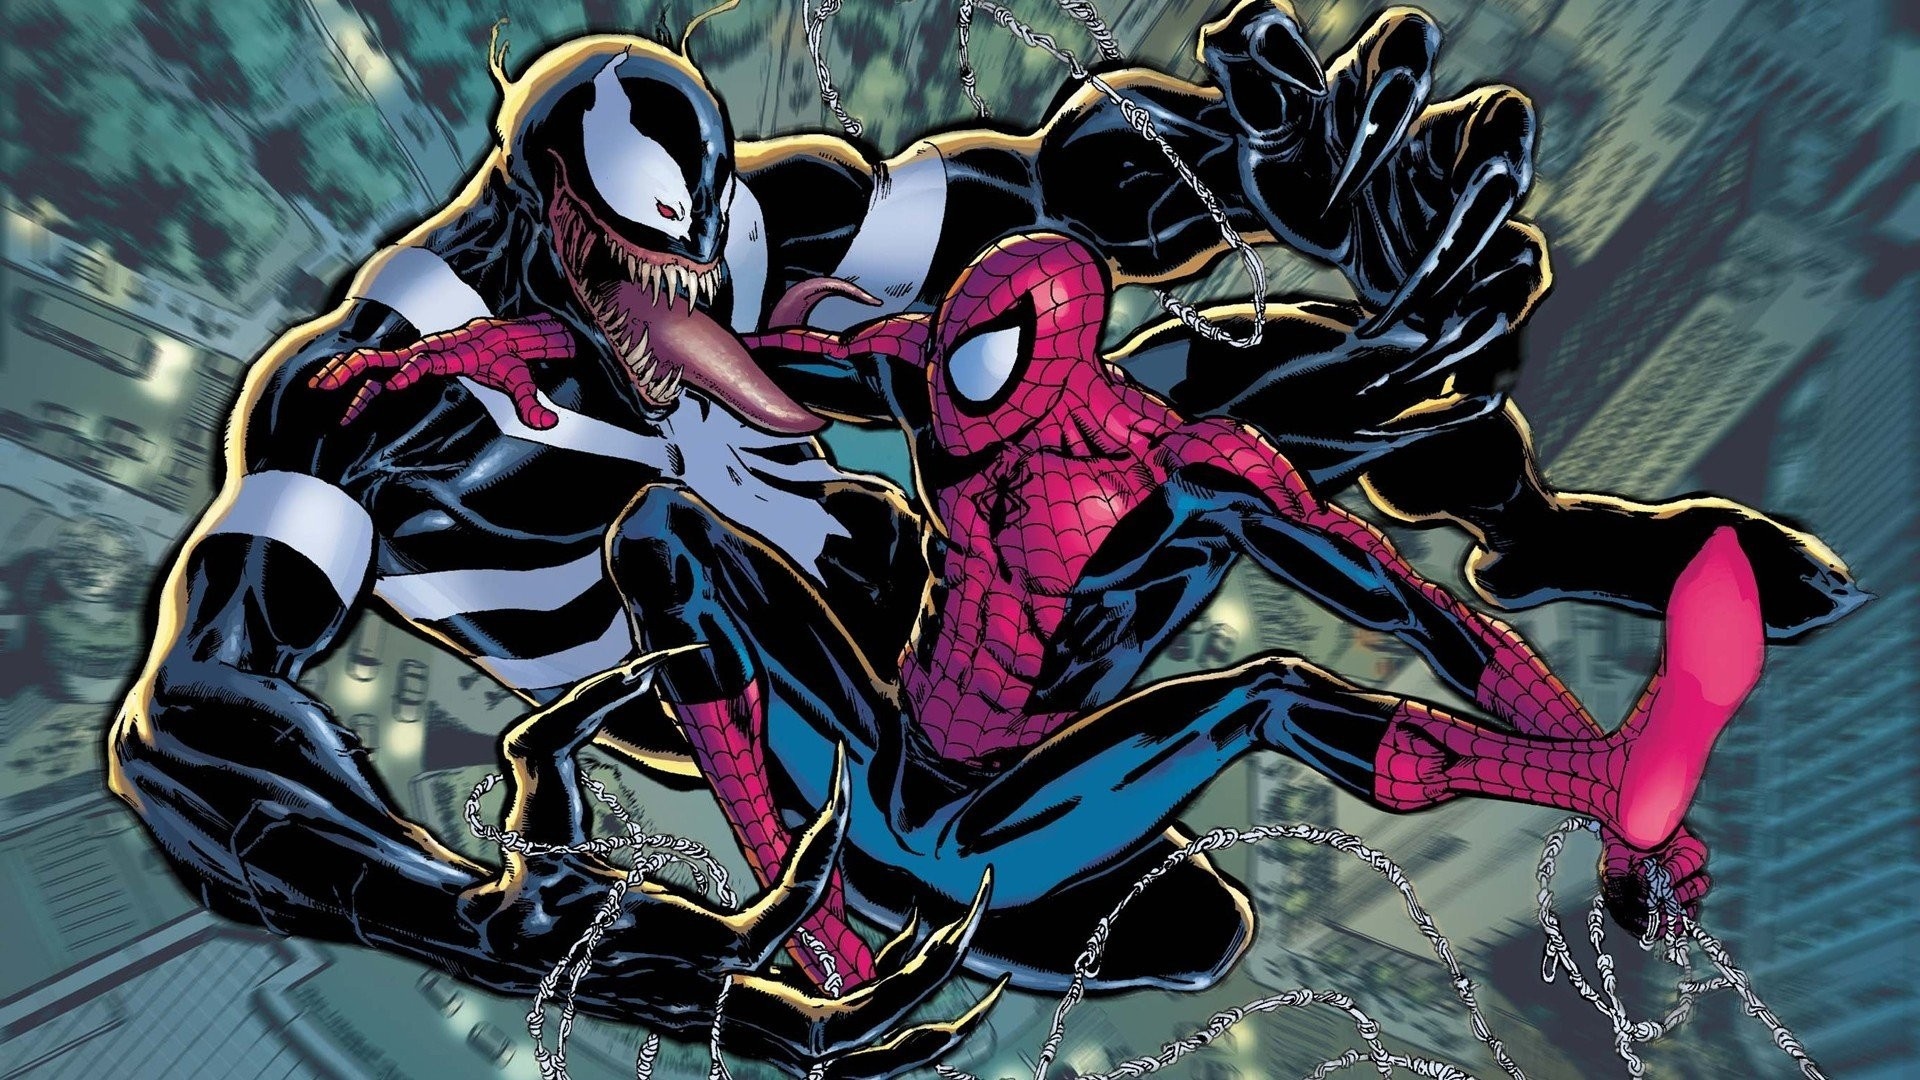 1920x1080 Venom, Spider Man, Comics, Marvel Comics Wallpapers HD / Desktop .